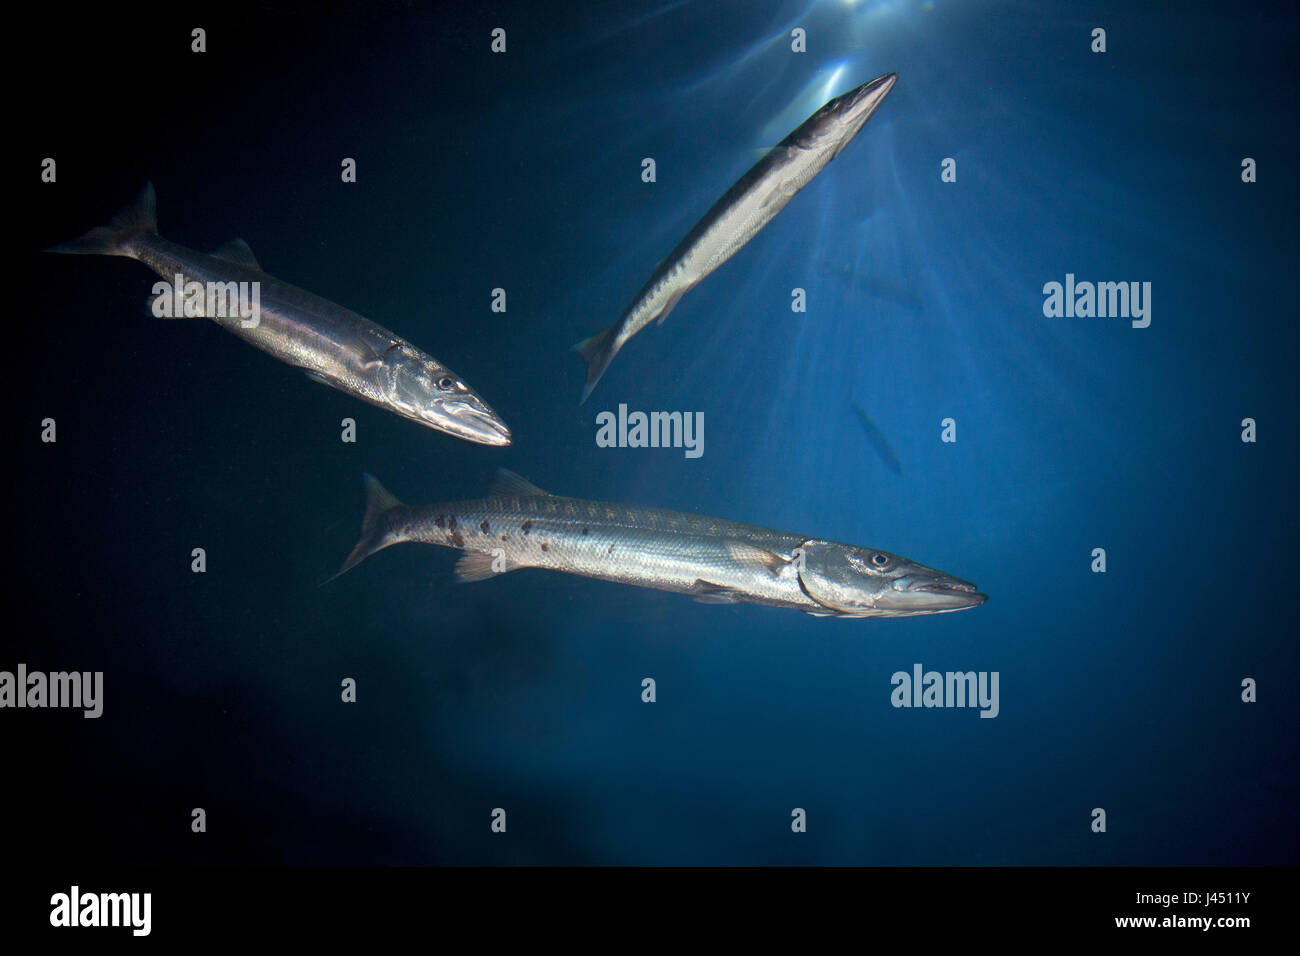 barracuda's photographed from below - Stock Image